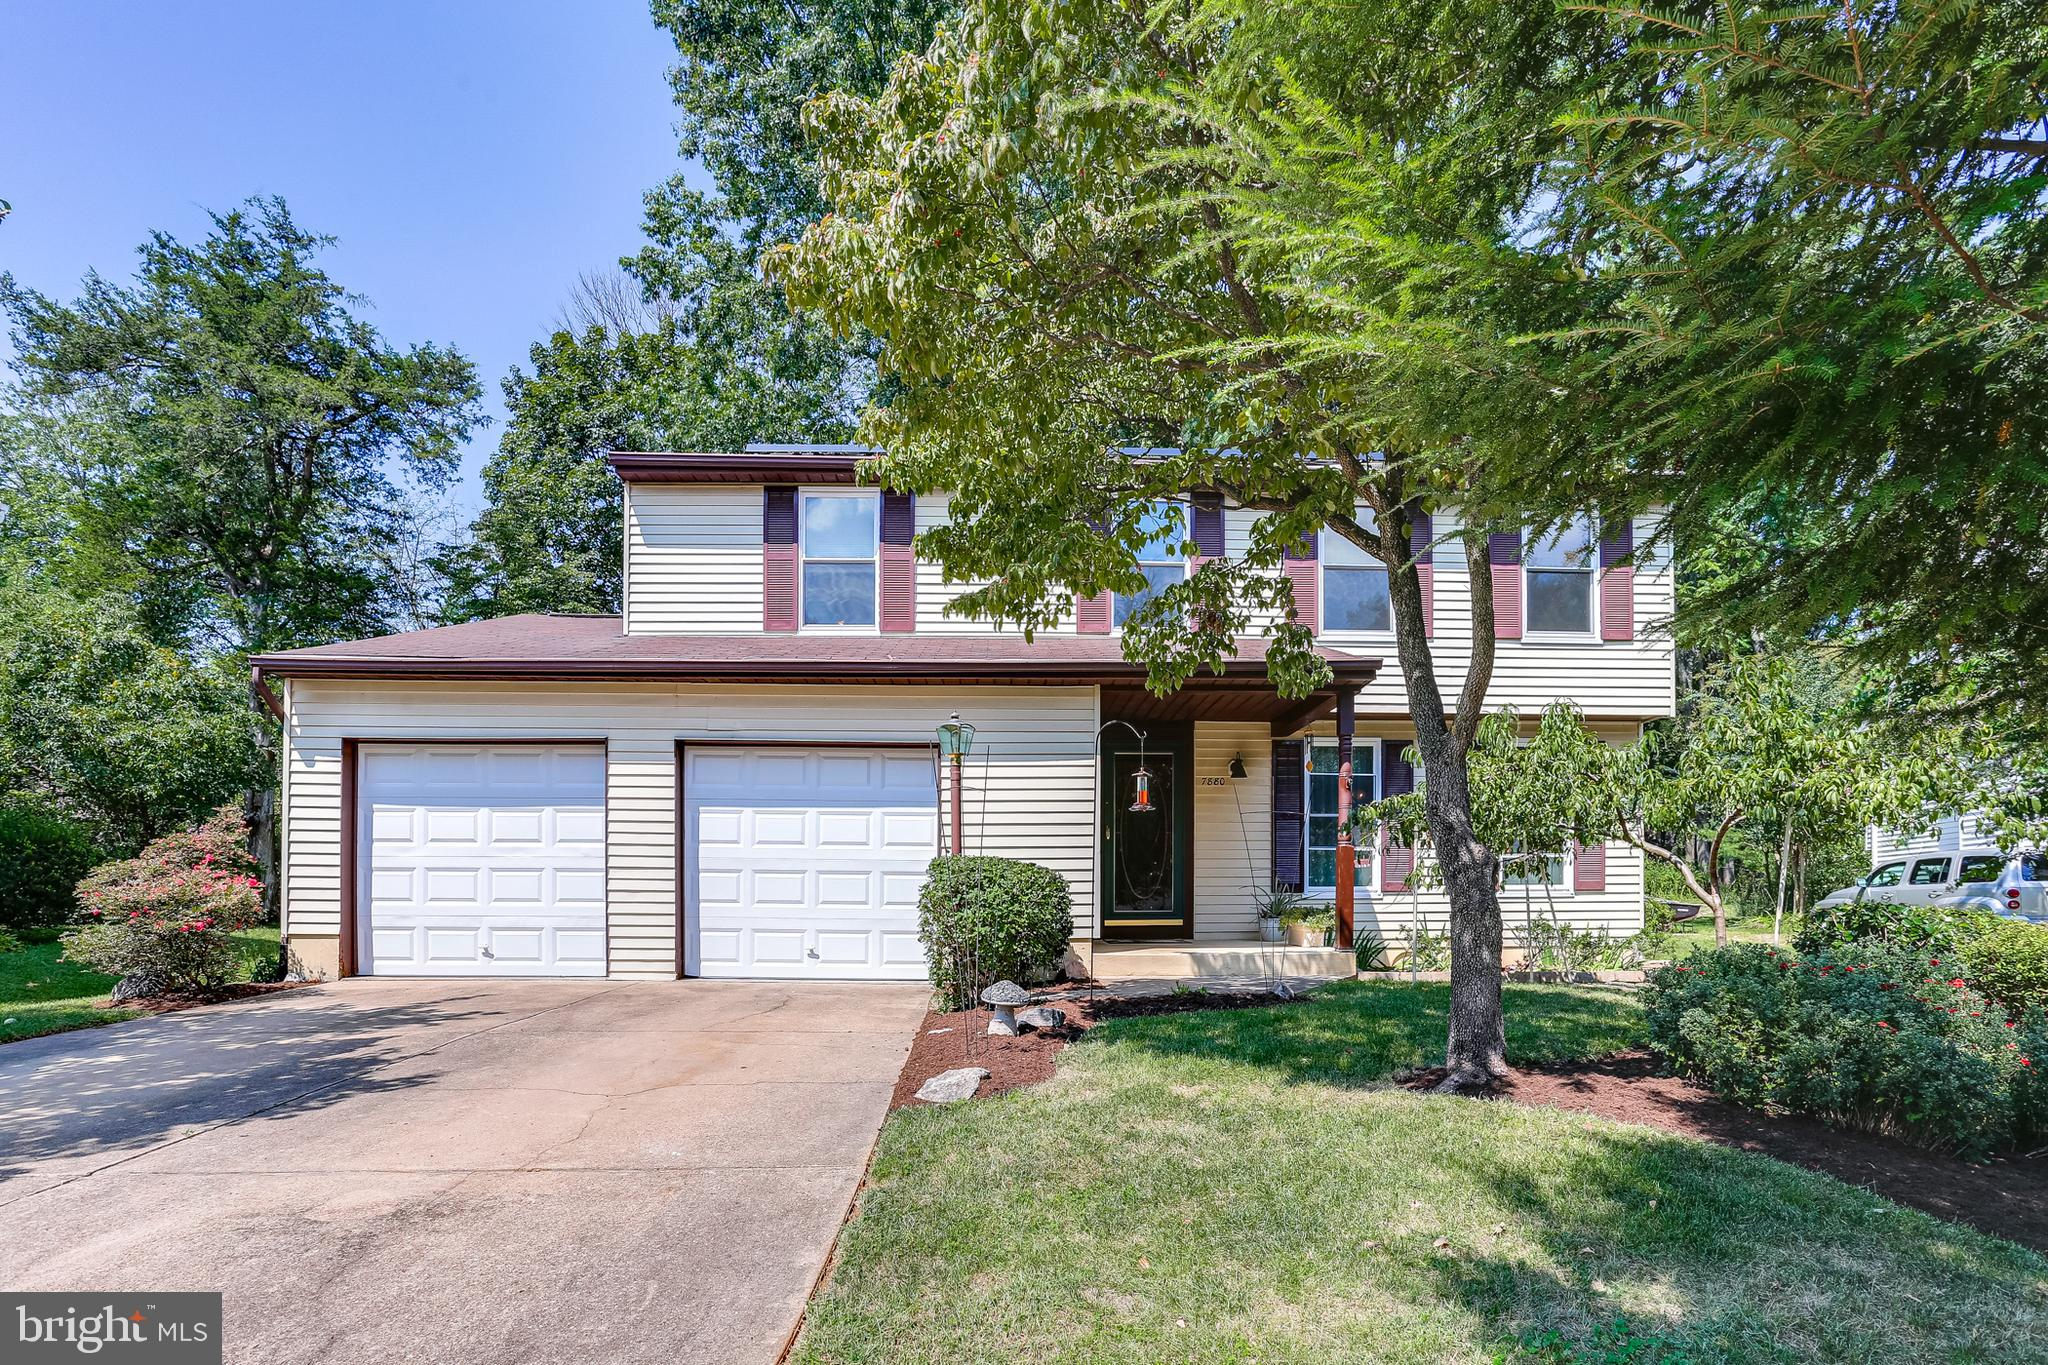 7880 SAVAGE GUILFORD ROAD, JESSUP, MD 20794